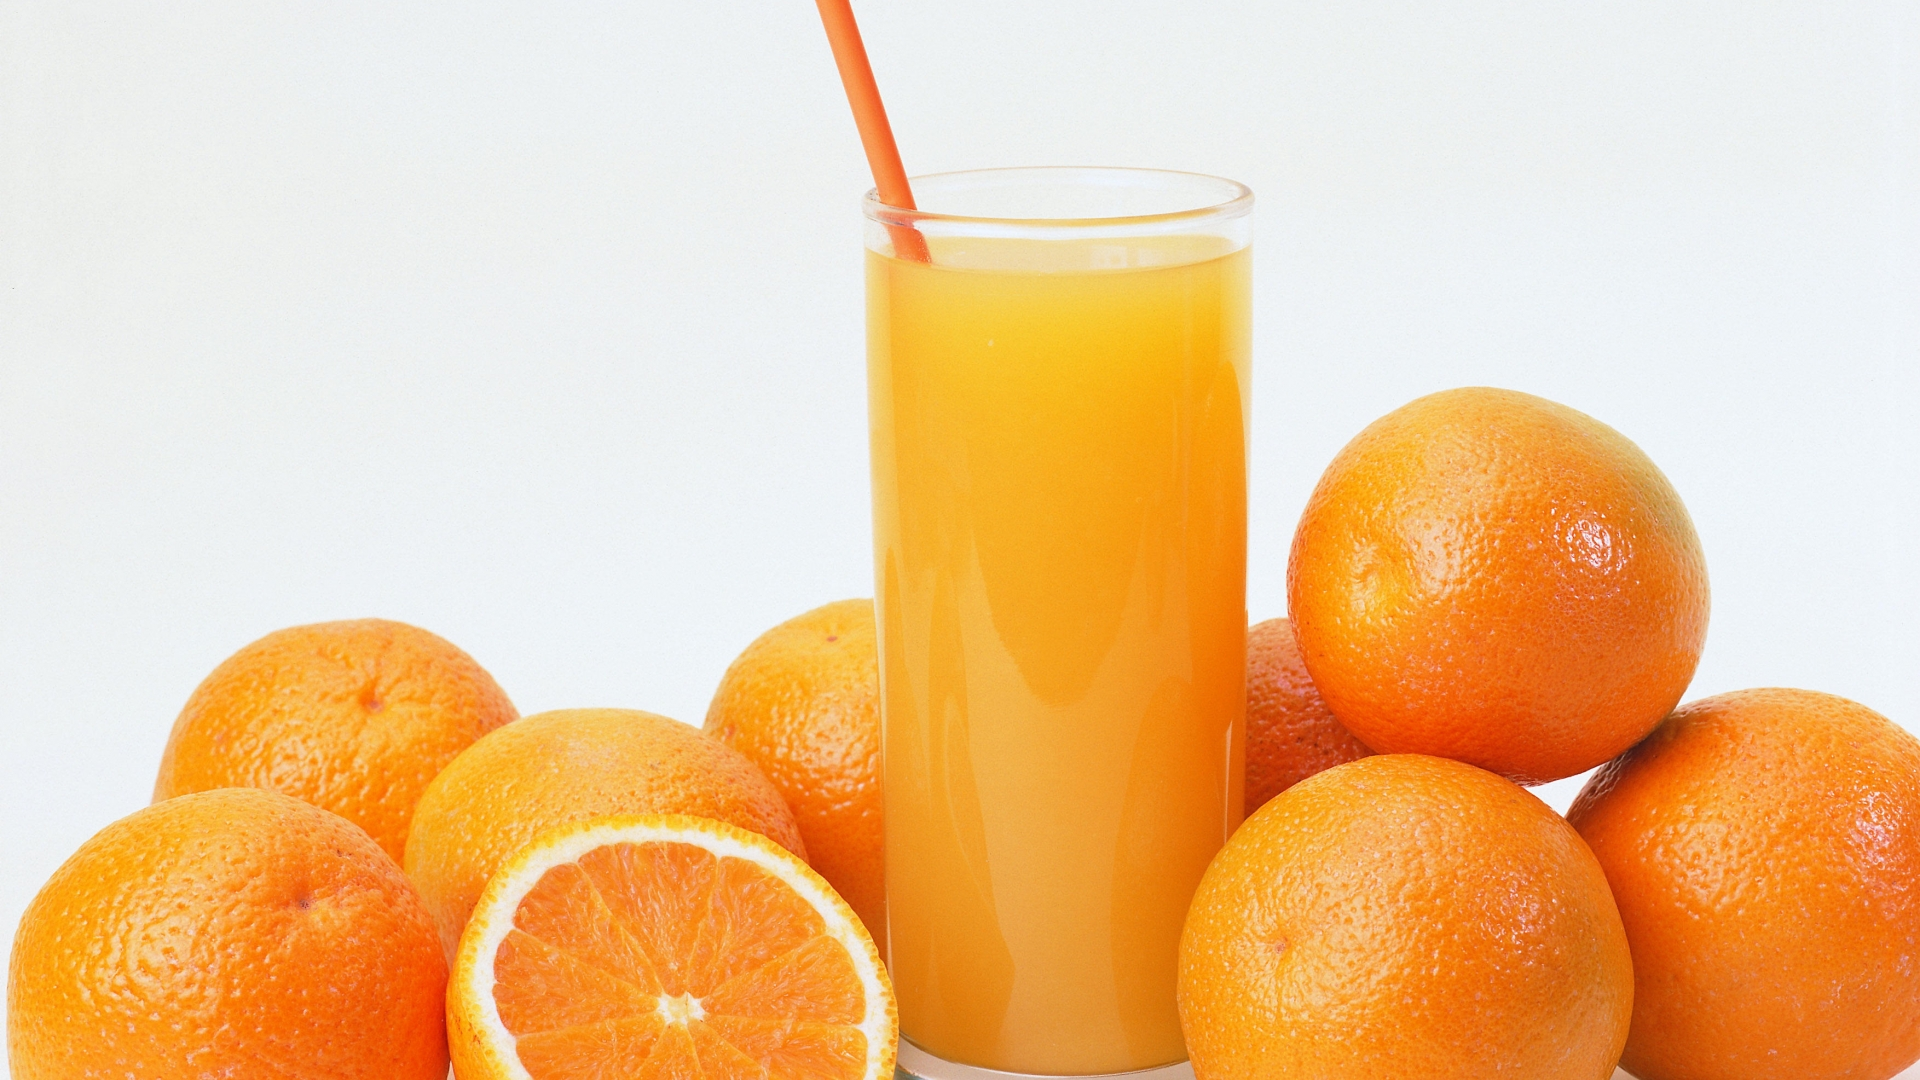 Orange Juice Brands HD Wallpaper Background Images 1920x1080